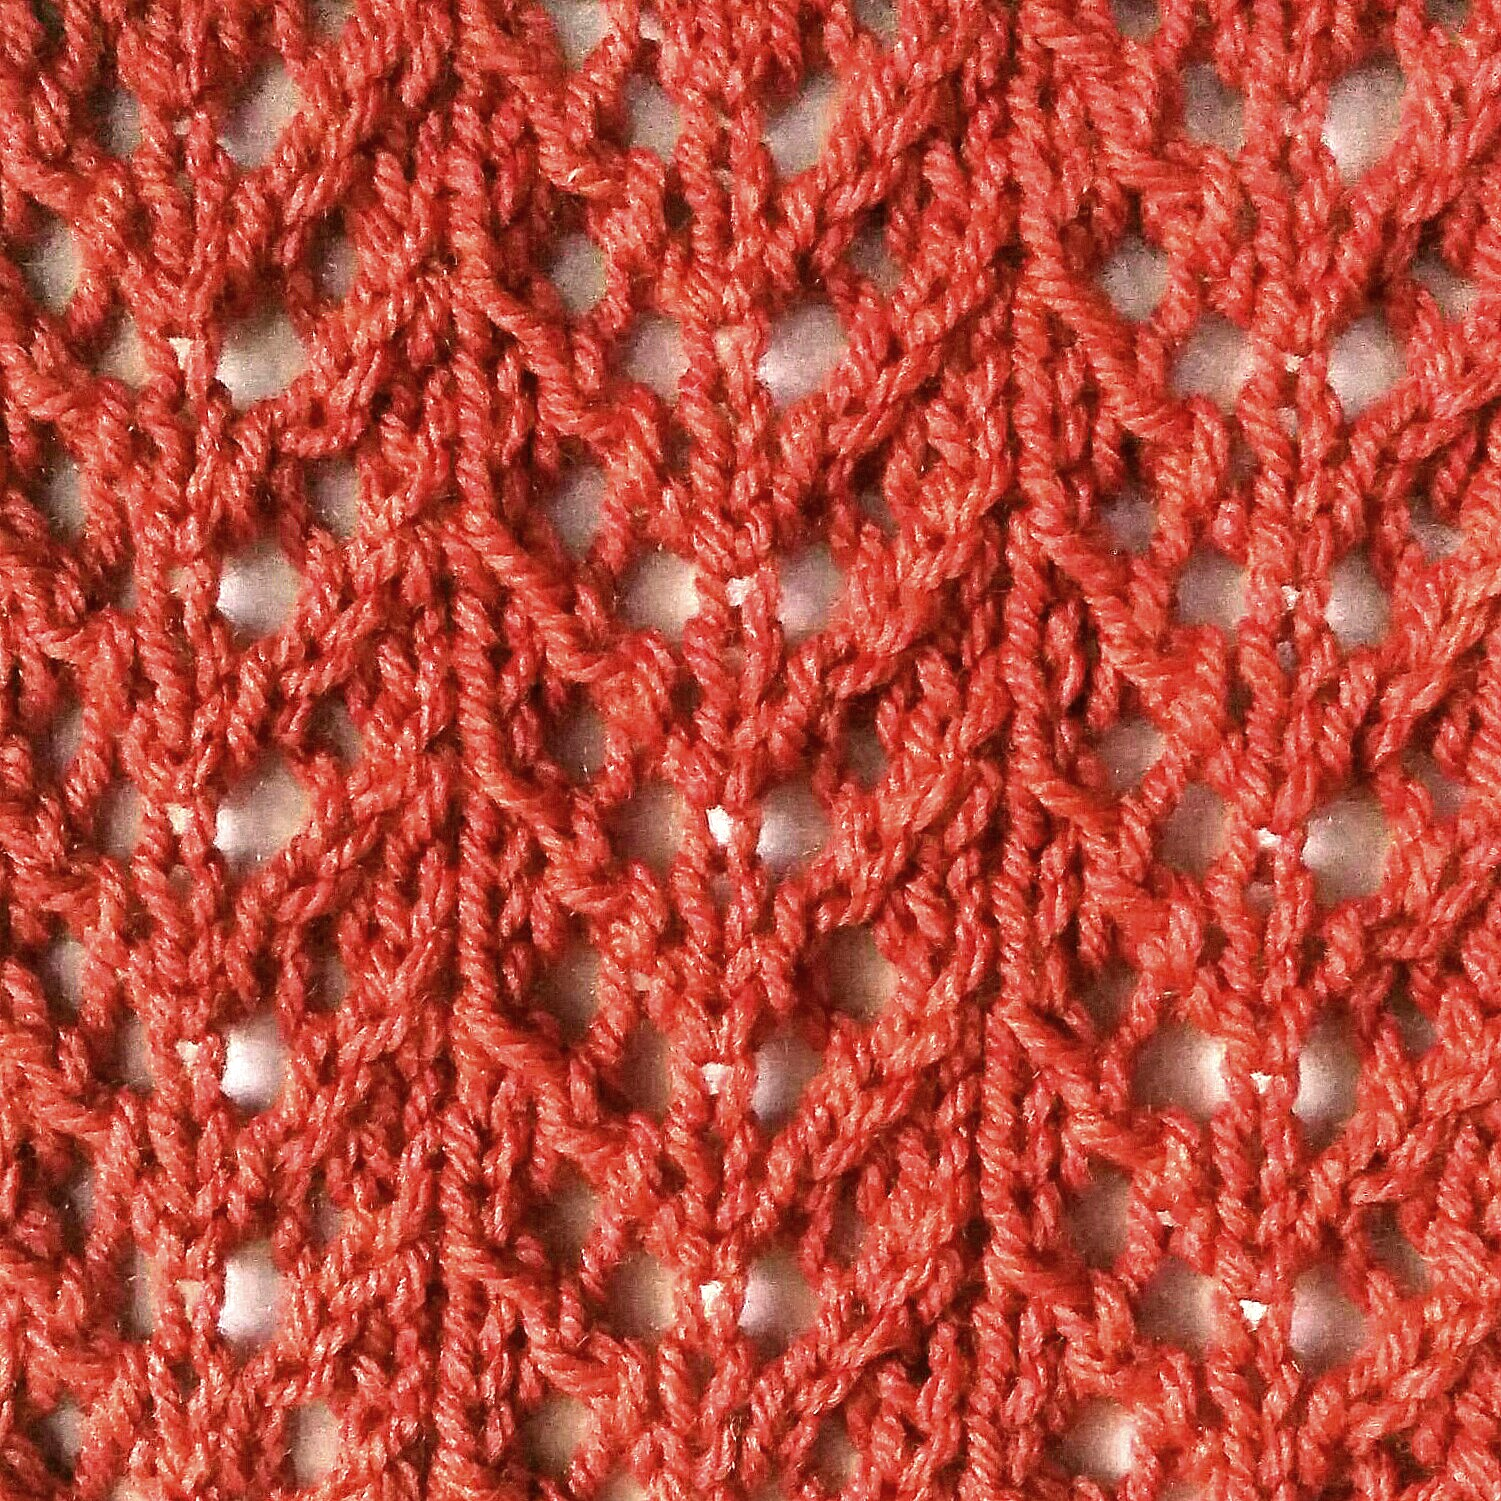 Fern Lace Stitch